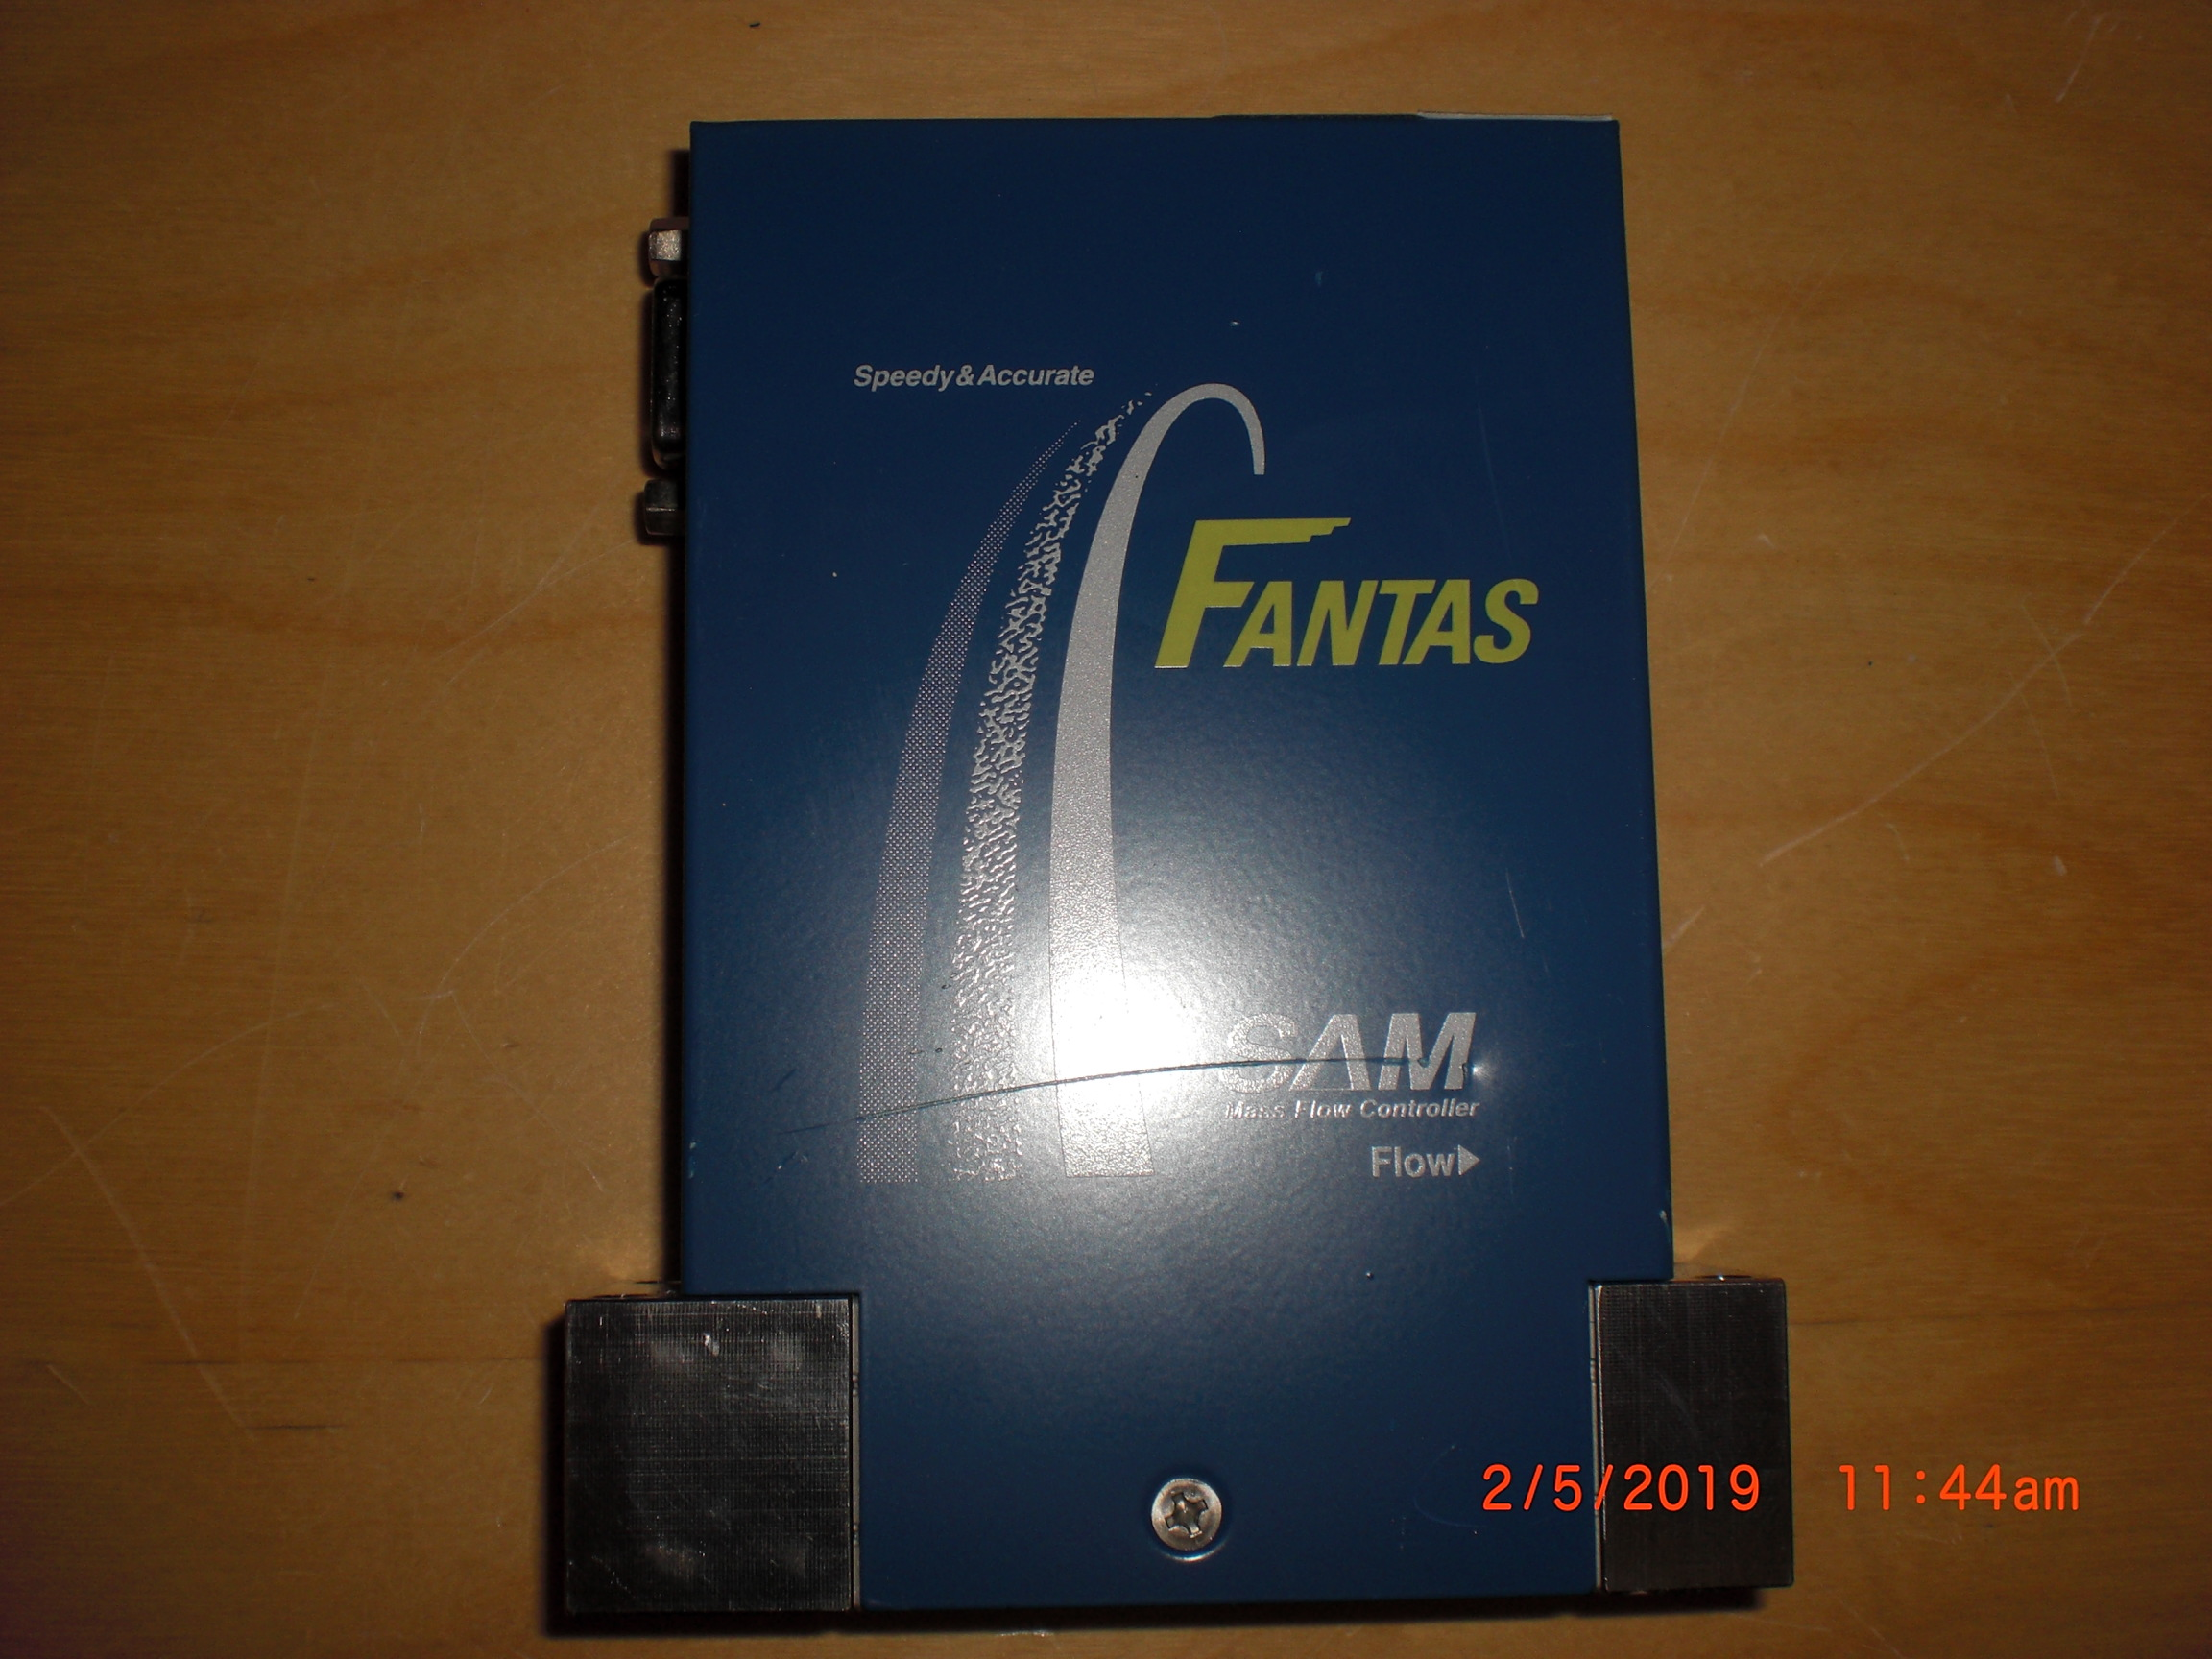 MFC HITACHI - SAM SFC2480FAPD2-N2-30/100sccm LAM Reasearch (LAM) 797-047841-403